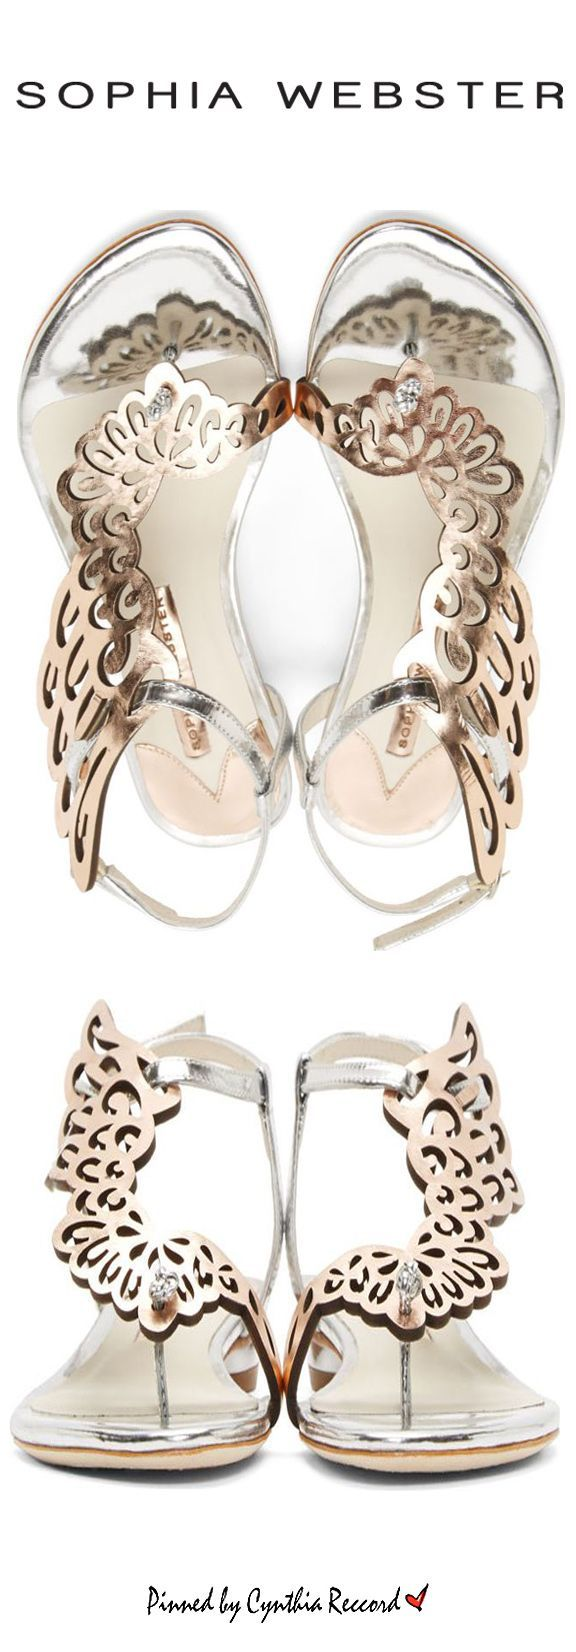 Sophia Webster Rose Gold  Silver Wing Seraphina Sandals | SS 2015 Collection | cynthia reccord  with <3 from JDzigner www.jdzigner.com